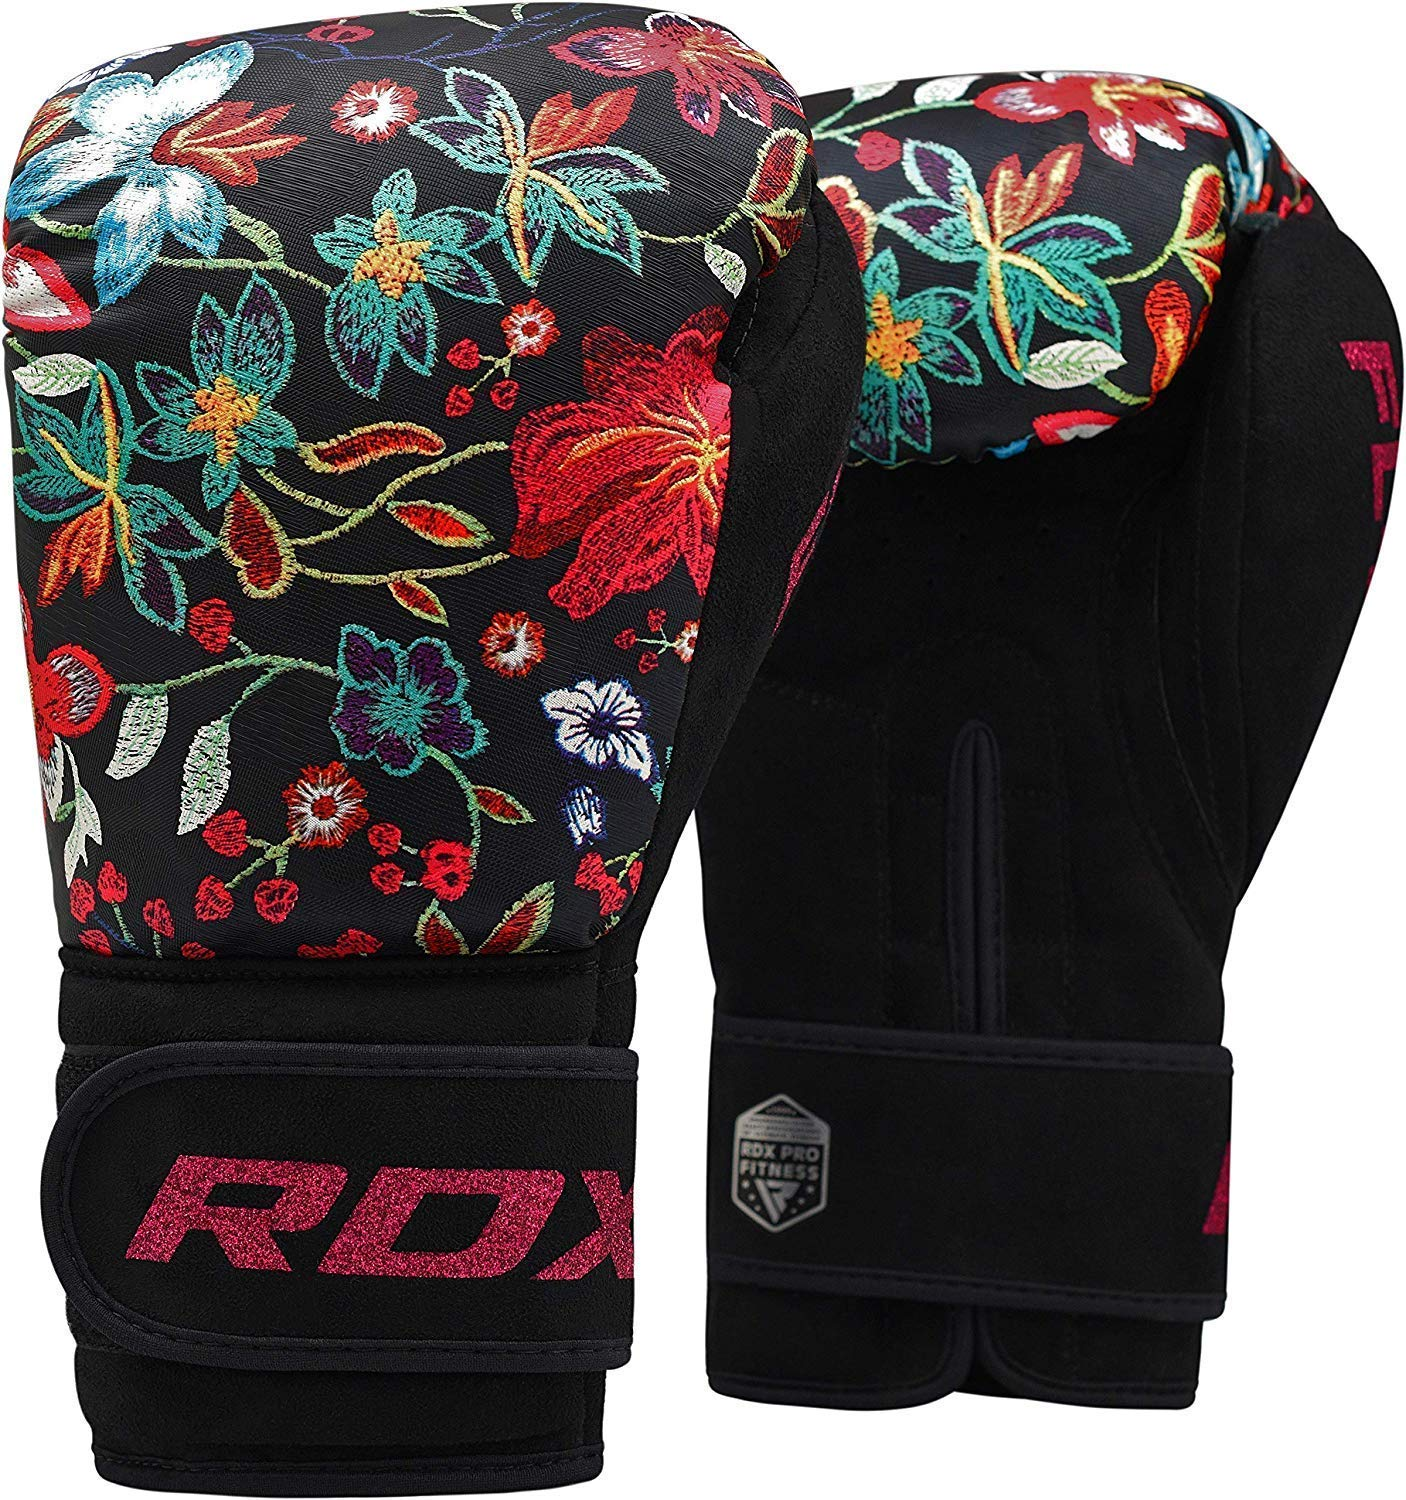 RDX Women Boxing Pads Focus Punch Mitts Hook and Jab Strike Pads MMA Punching Target Training with Punching Gloves